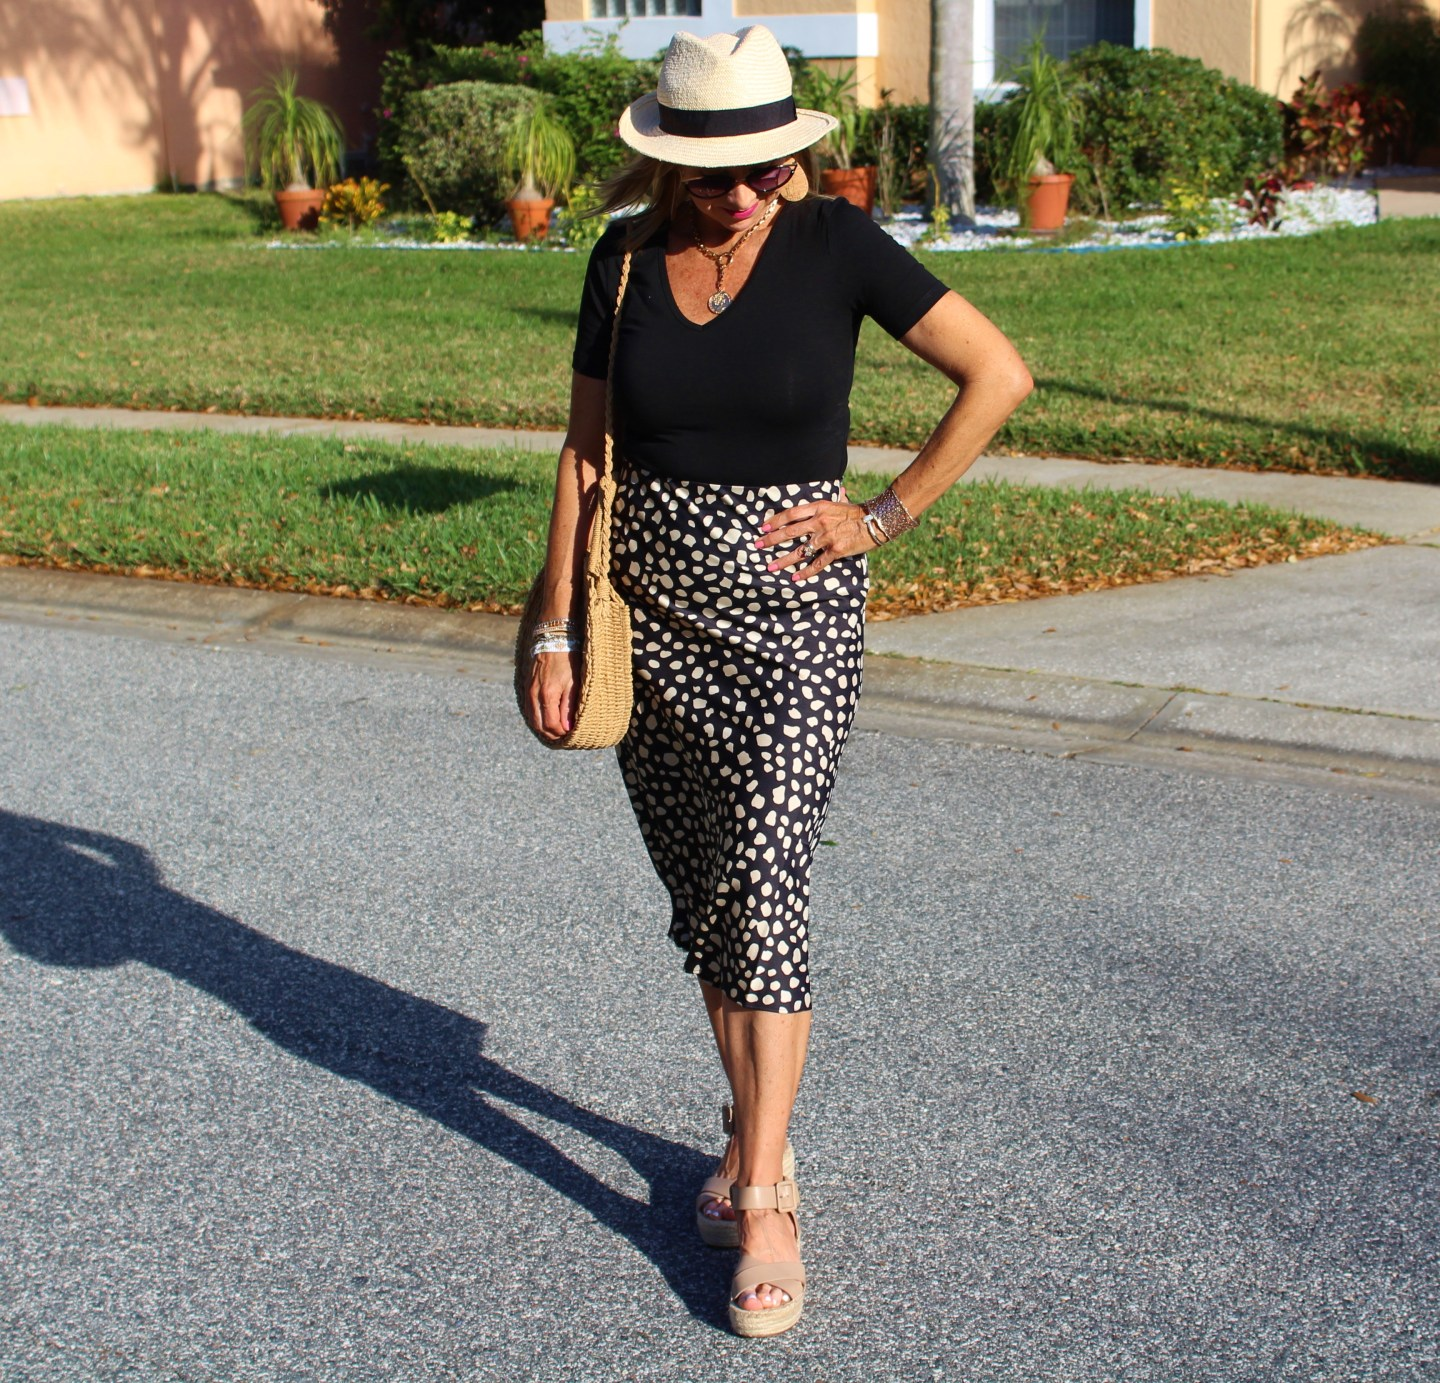 Leopard midi skirt + Black Bodysuit + Hat + Wedges